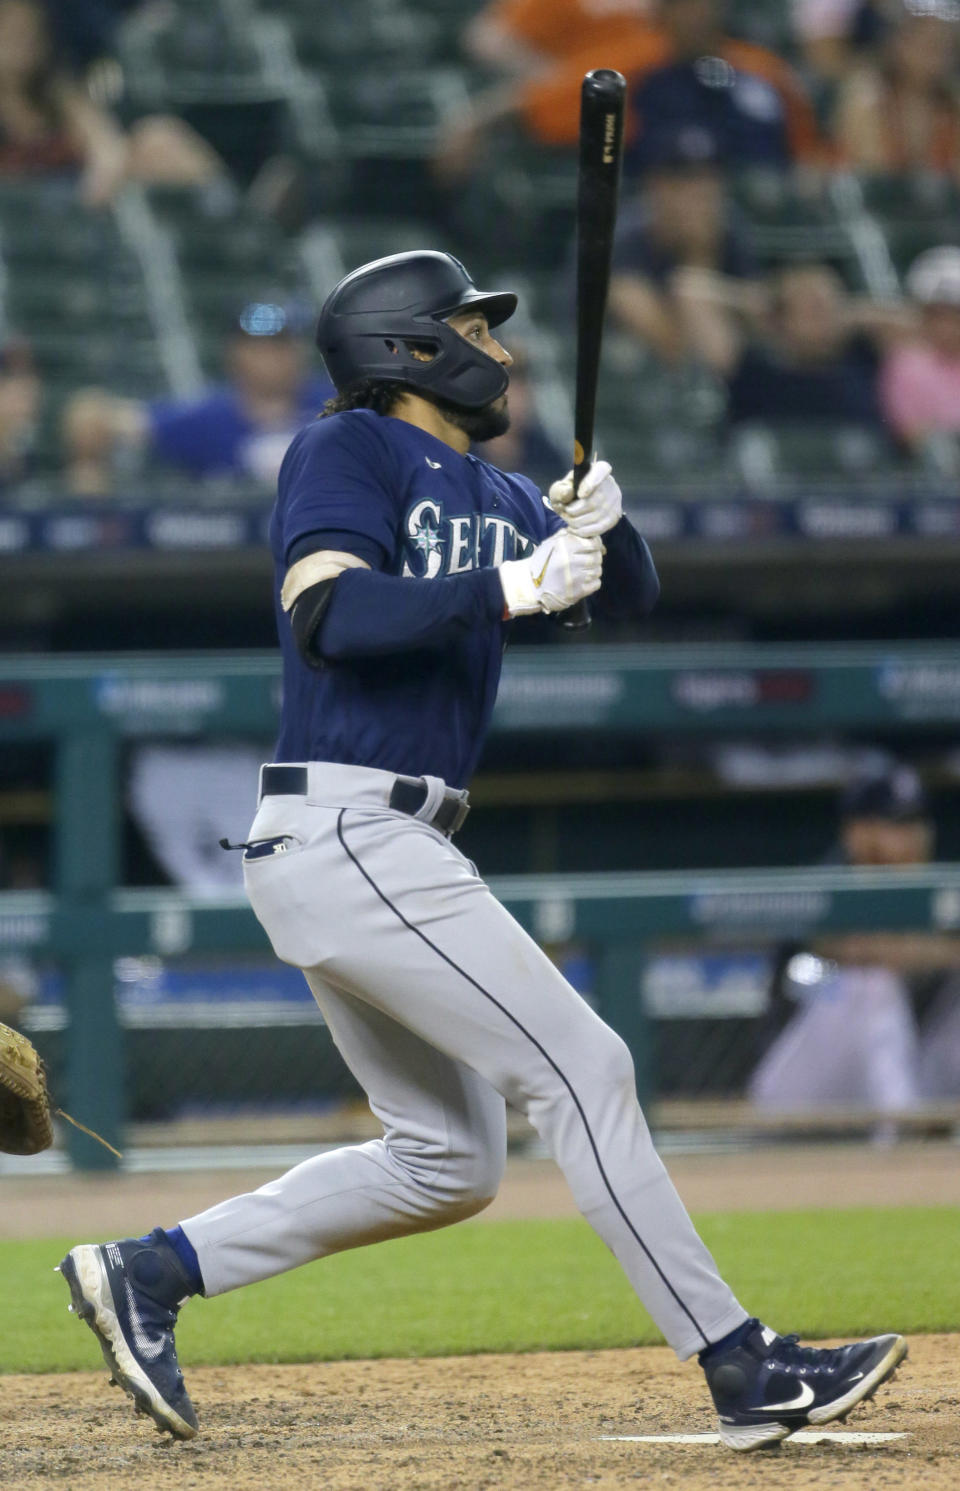 Seattle Mariners' Dillon Thomas watches his two-run single during the 11th inning against the Detroit Tigers in a baseball game Wednesday, June 9, 2021, in Detroit. The Mariners won 9-6. (AP Photo/Duane Burleson)